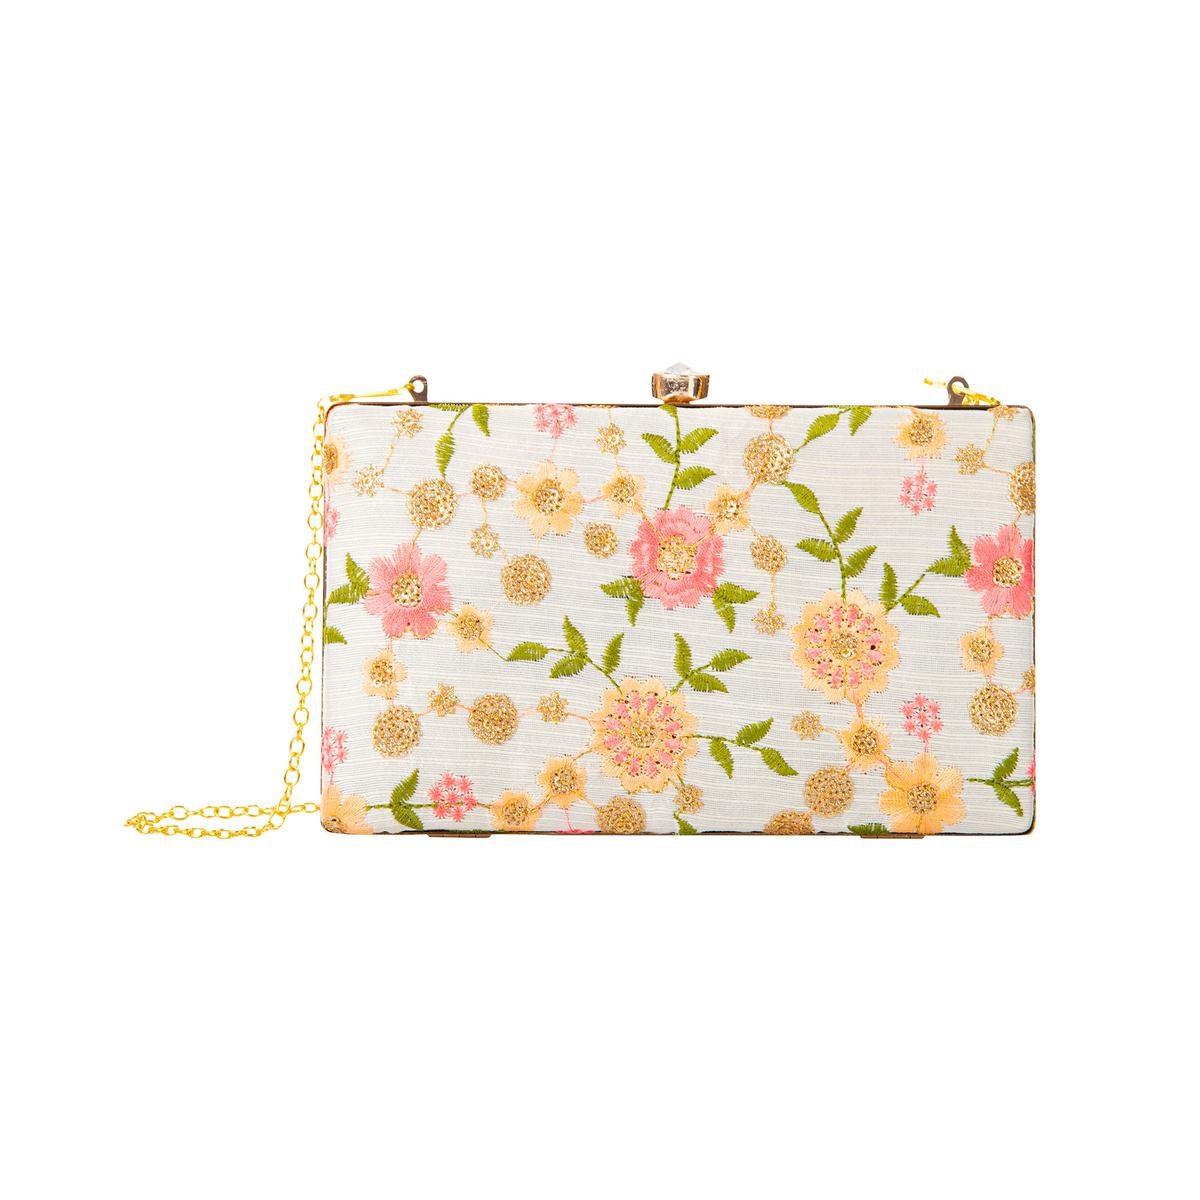 Glowing White Colored Floral Embroidered Fancy Clutch